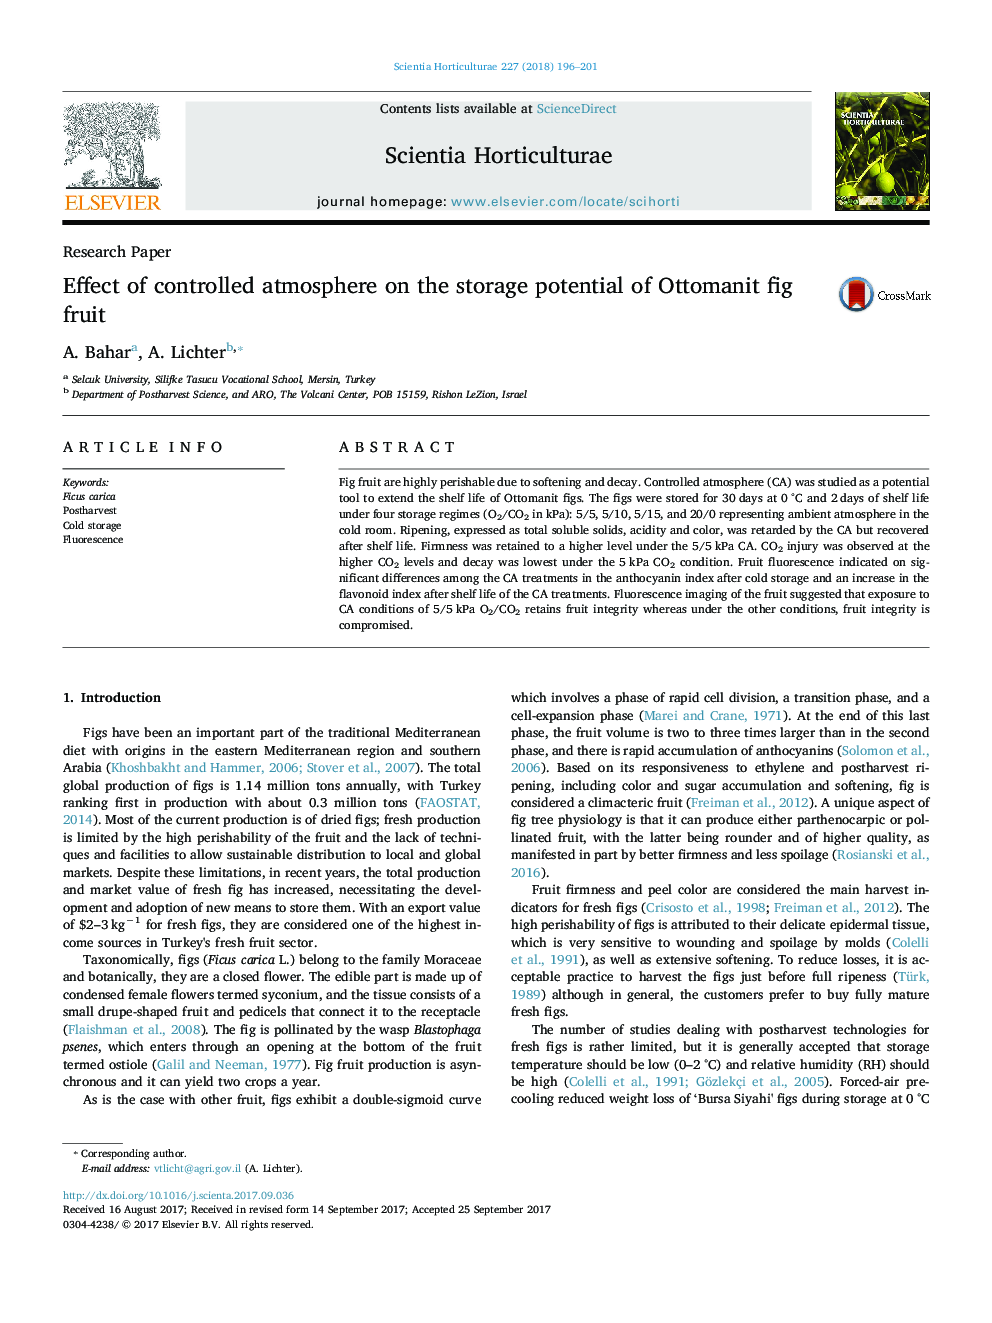 Research PaperEffect of controlled atmosphere on the storage potential of Ottomanit fig fruit